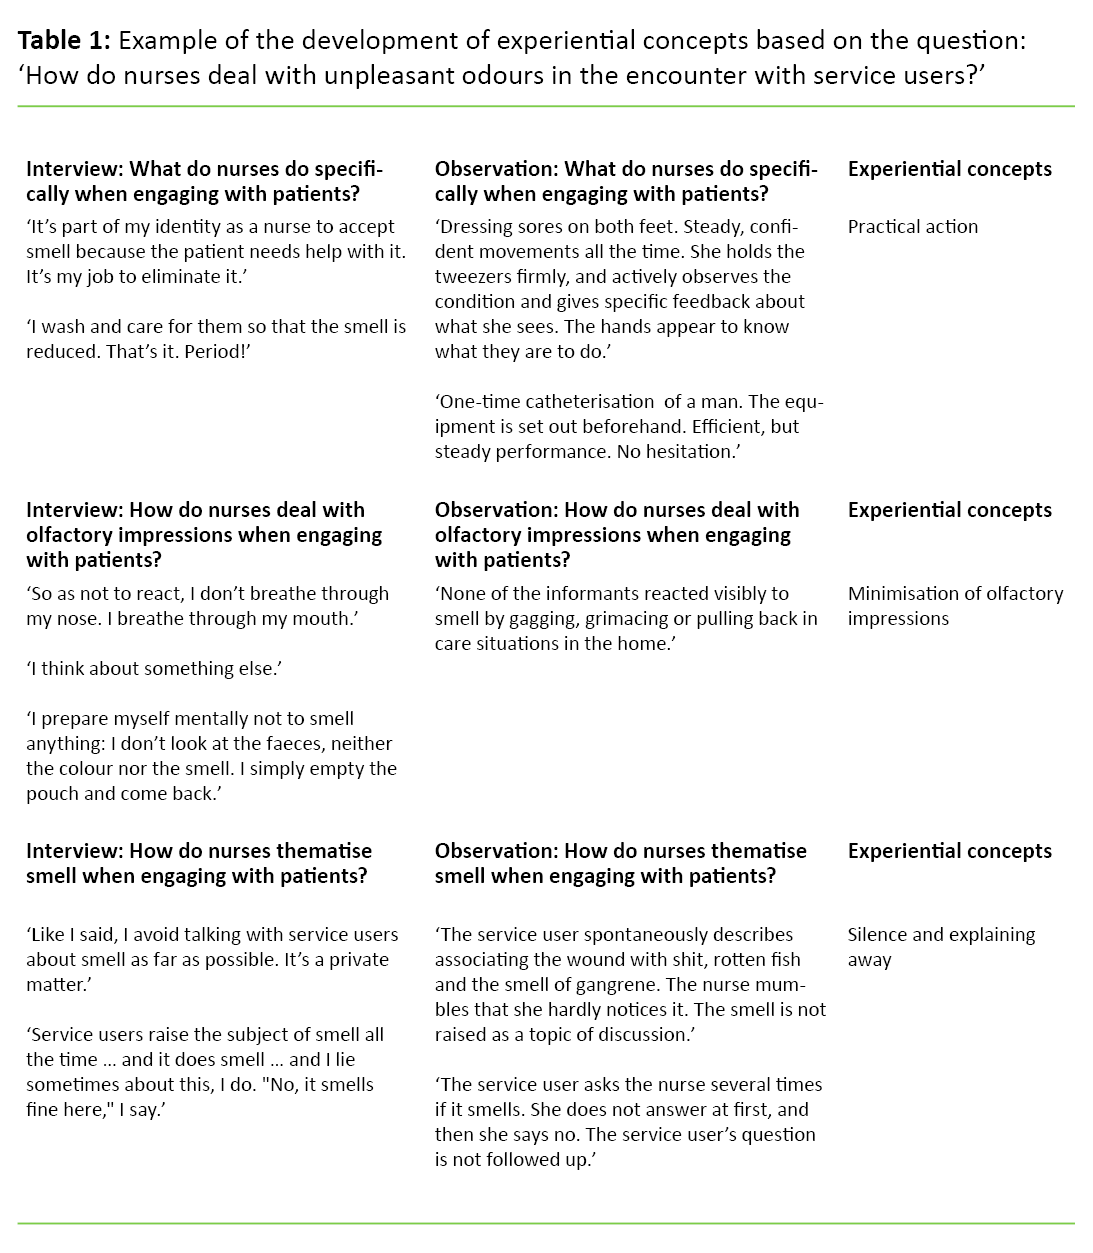 examples of nursing concepts for analysis